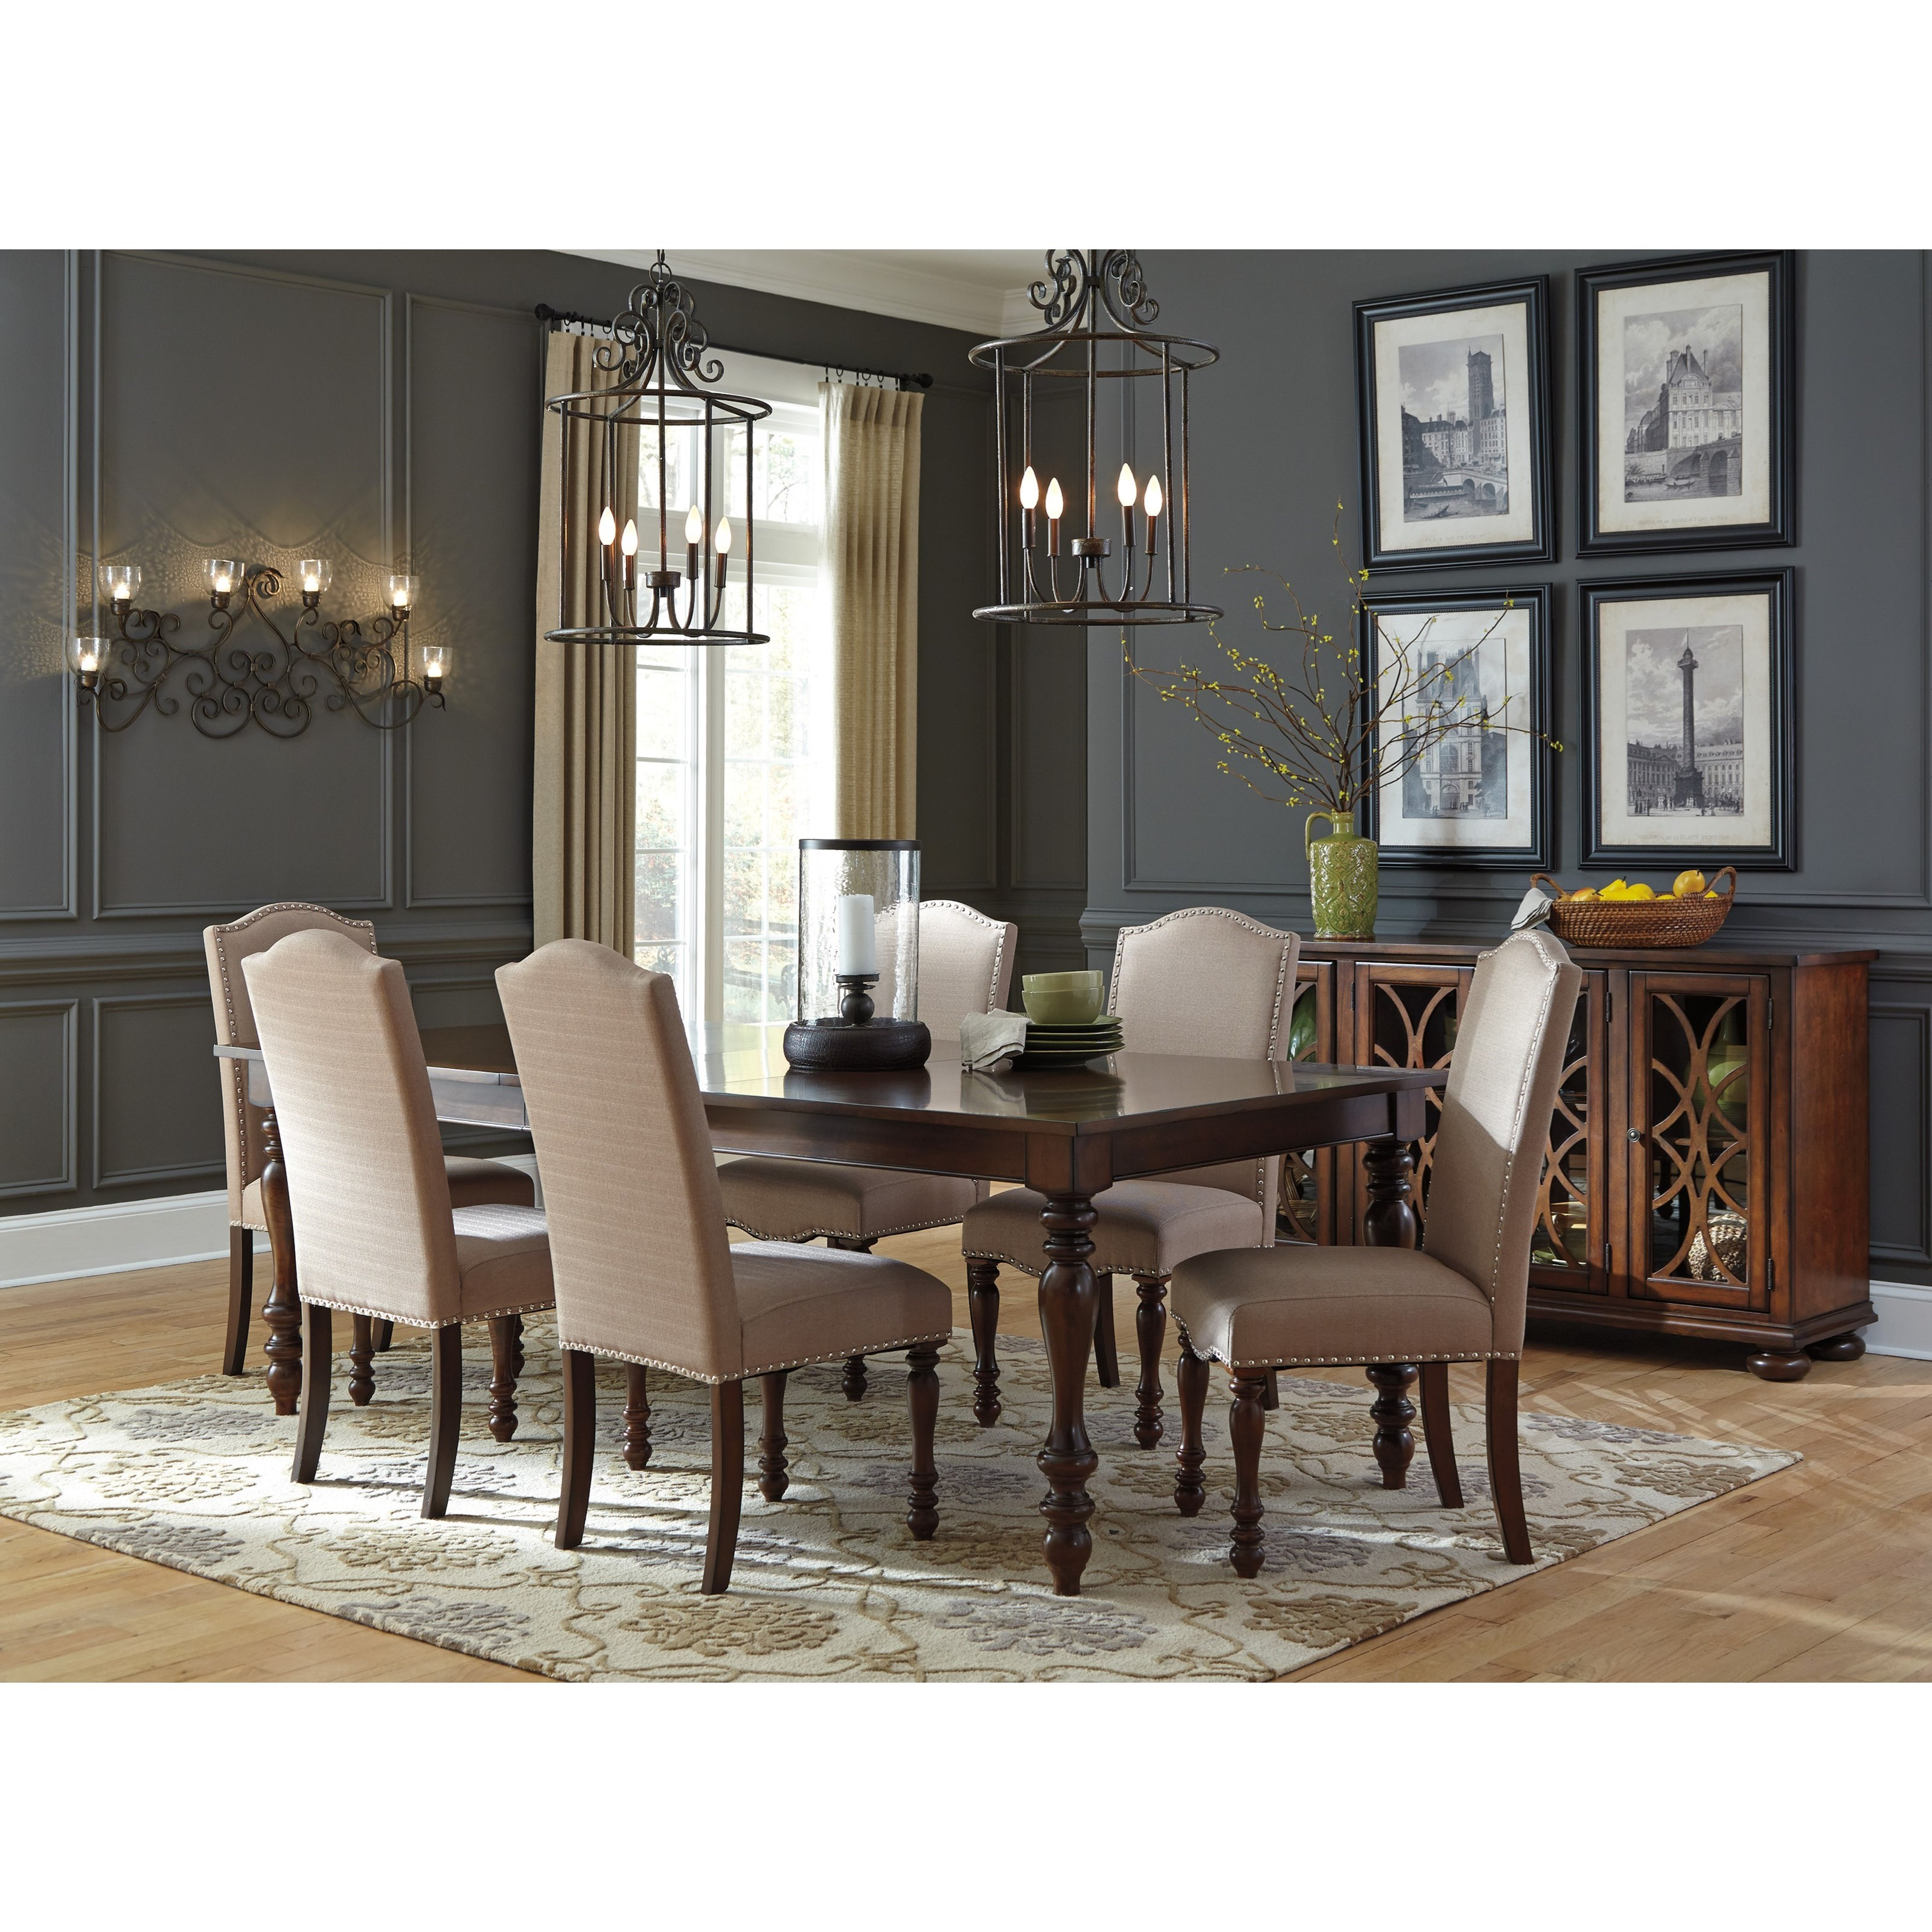 Ashley signature design baxenburg 7 piece dining room for 7 piece dining room set